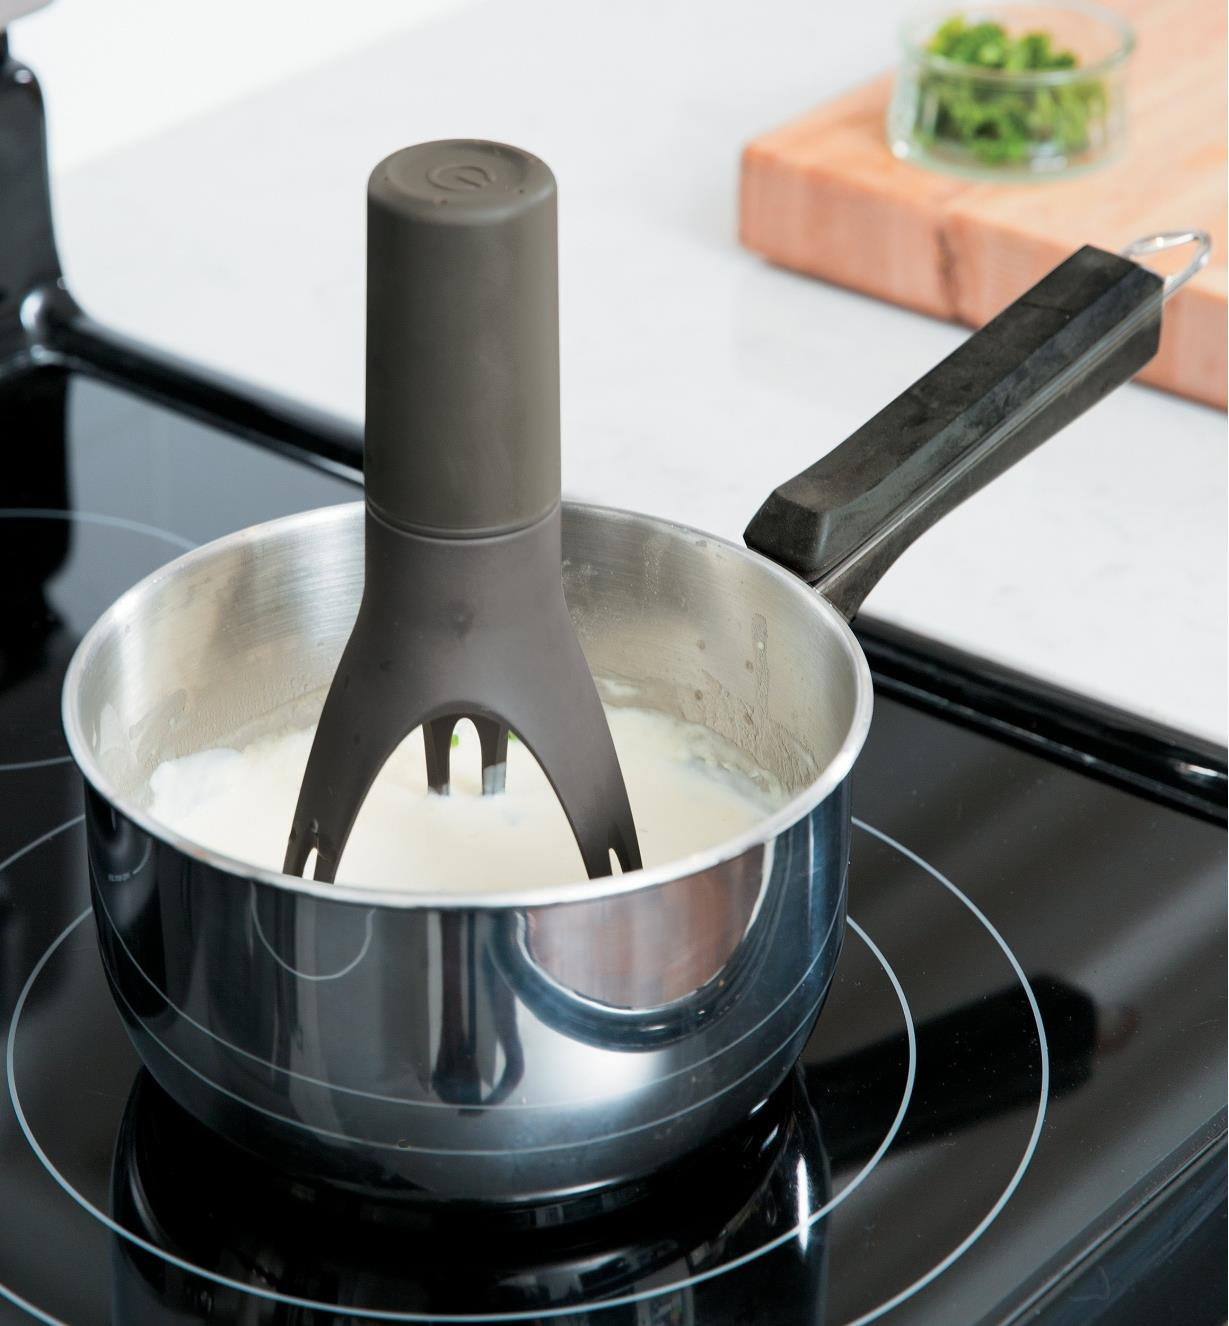 Auto-Stirrer stirring sauce in a pot on a stove